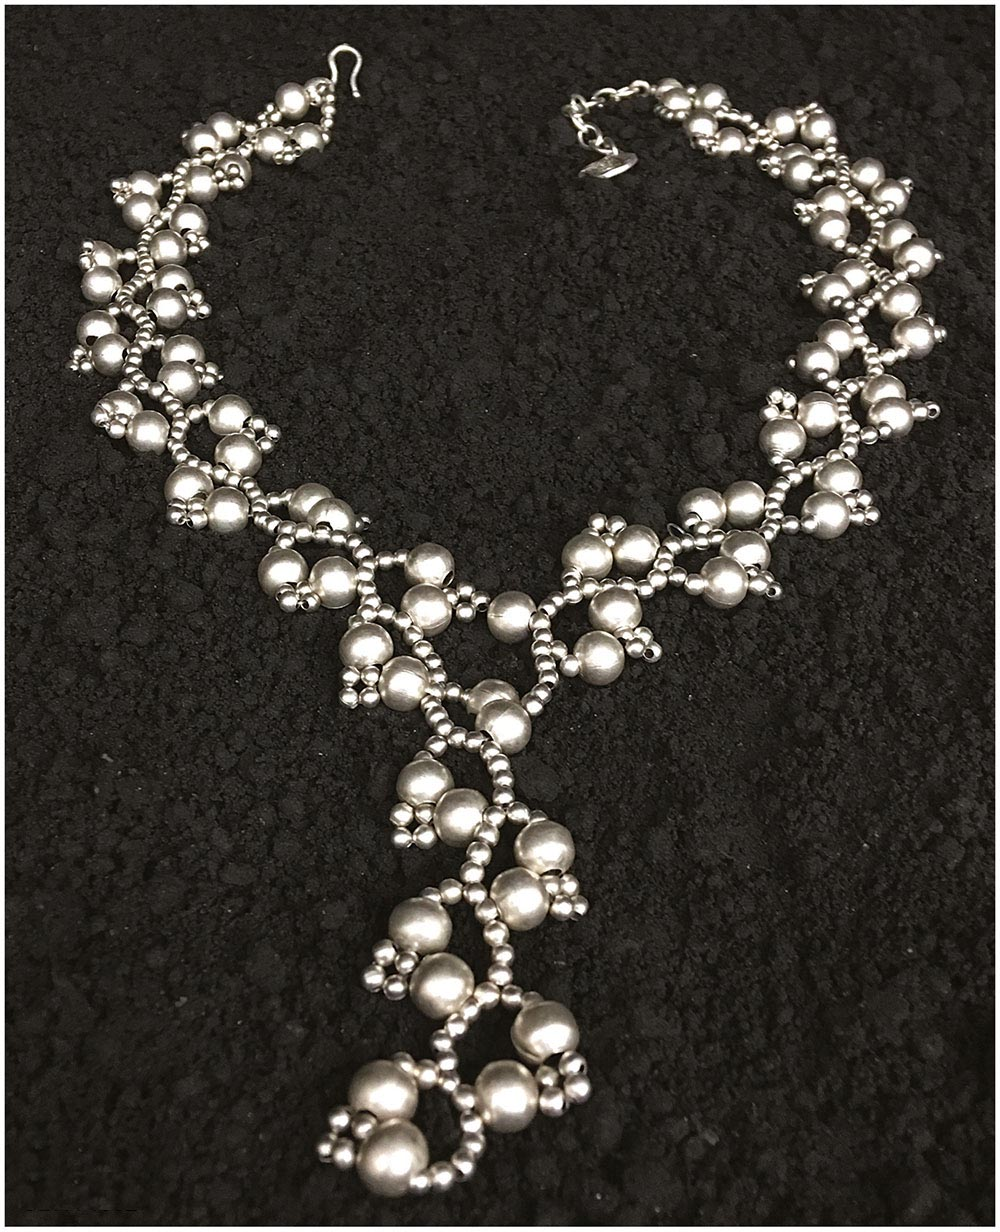 NECKLACE G1082 - SILVER PLATED